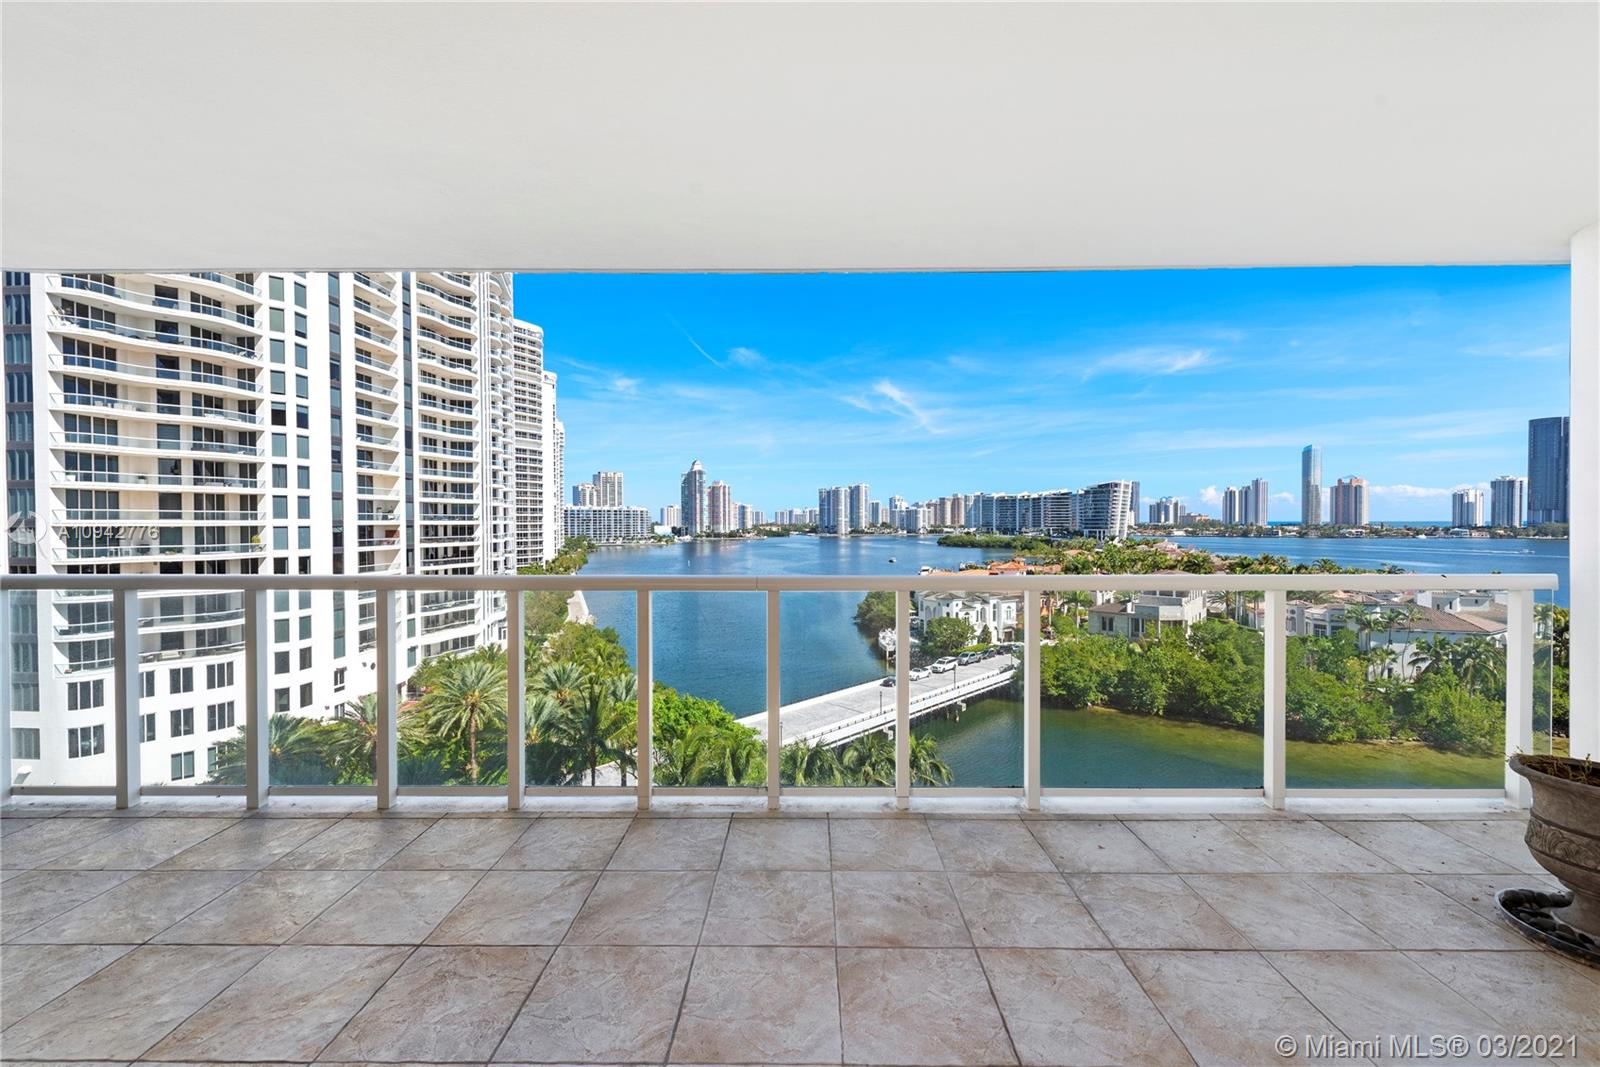 4000 Williams Island #904 - 4000 Island Blvd #904, Aventura, FL 33160